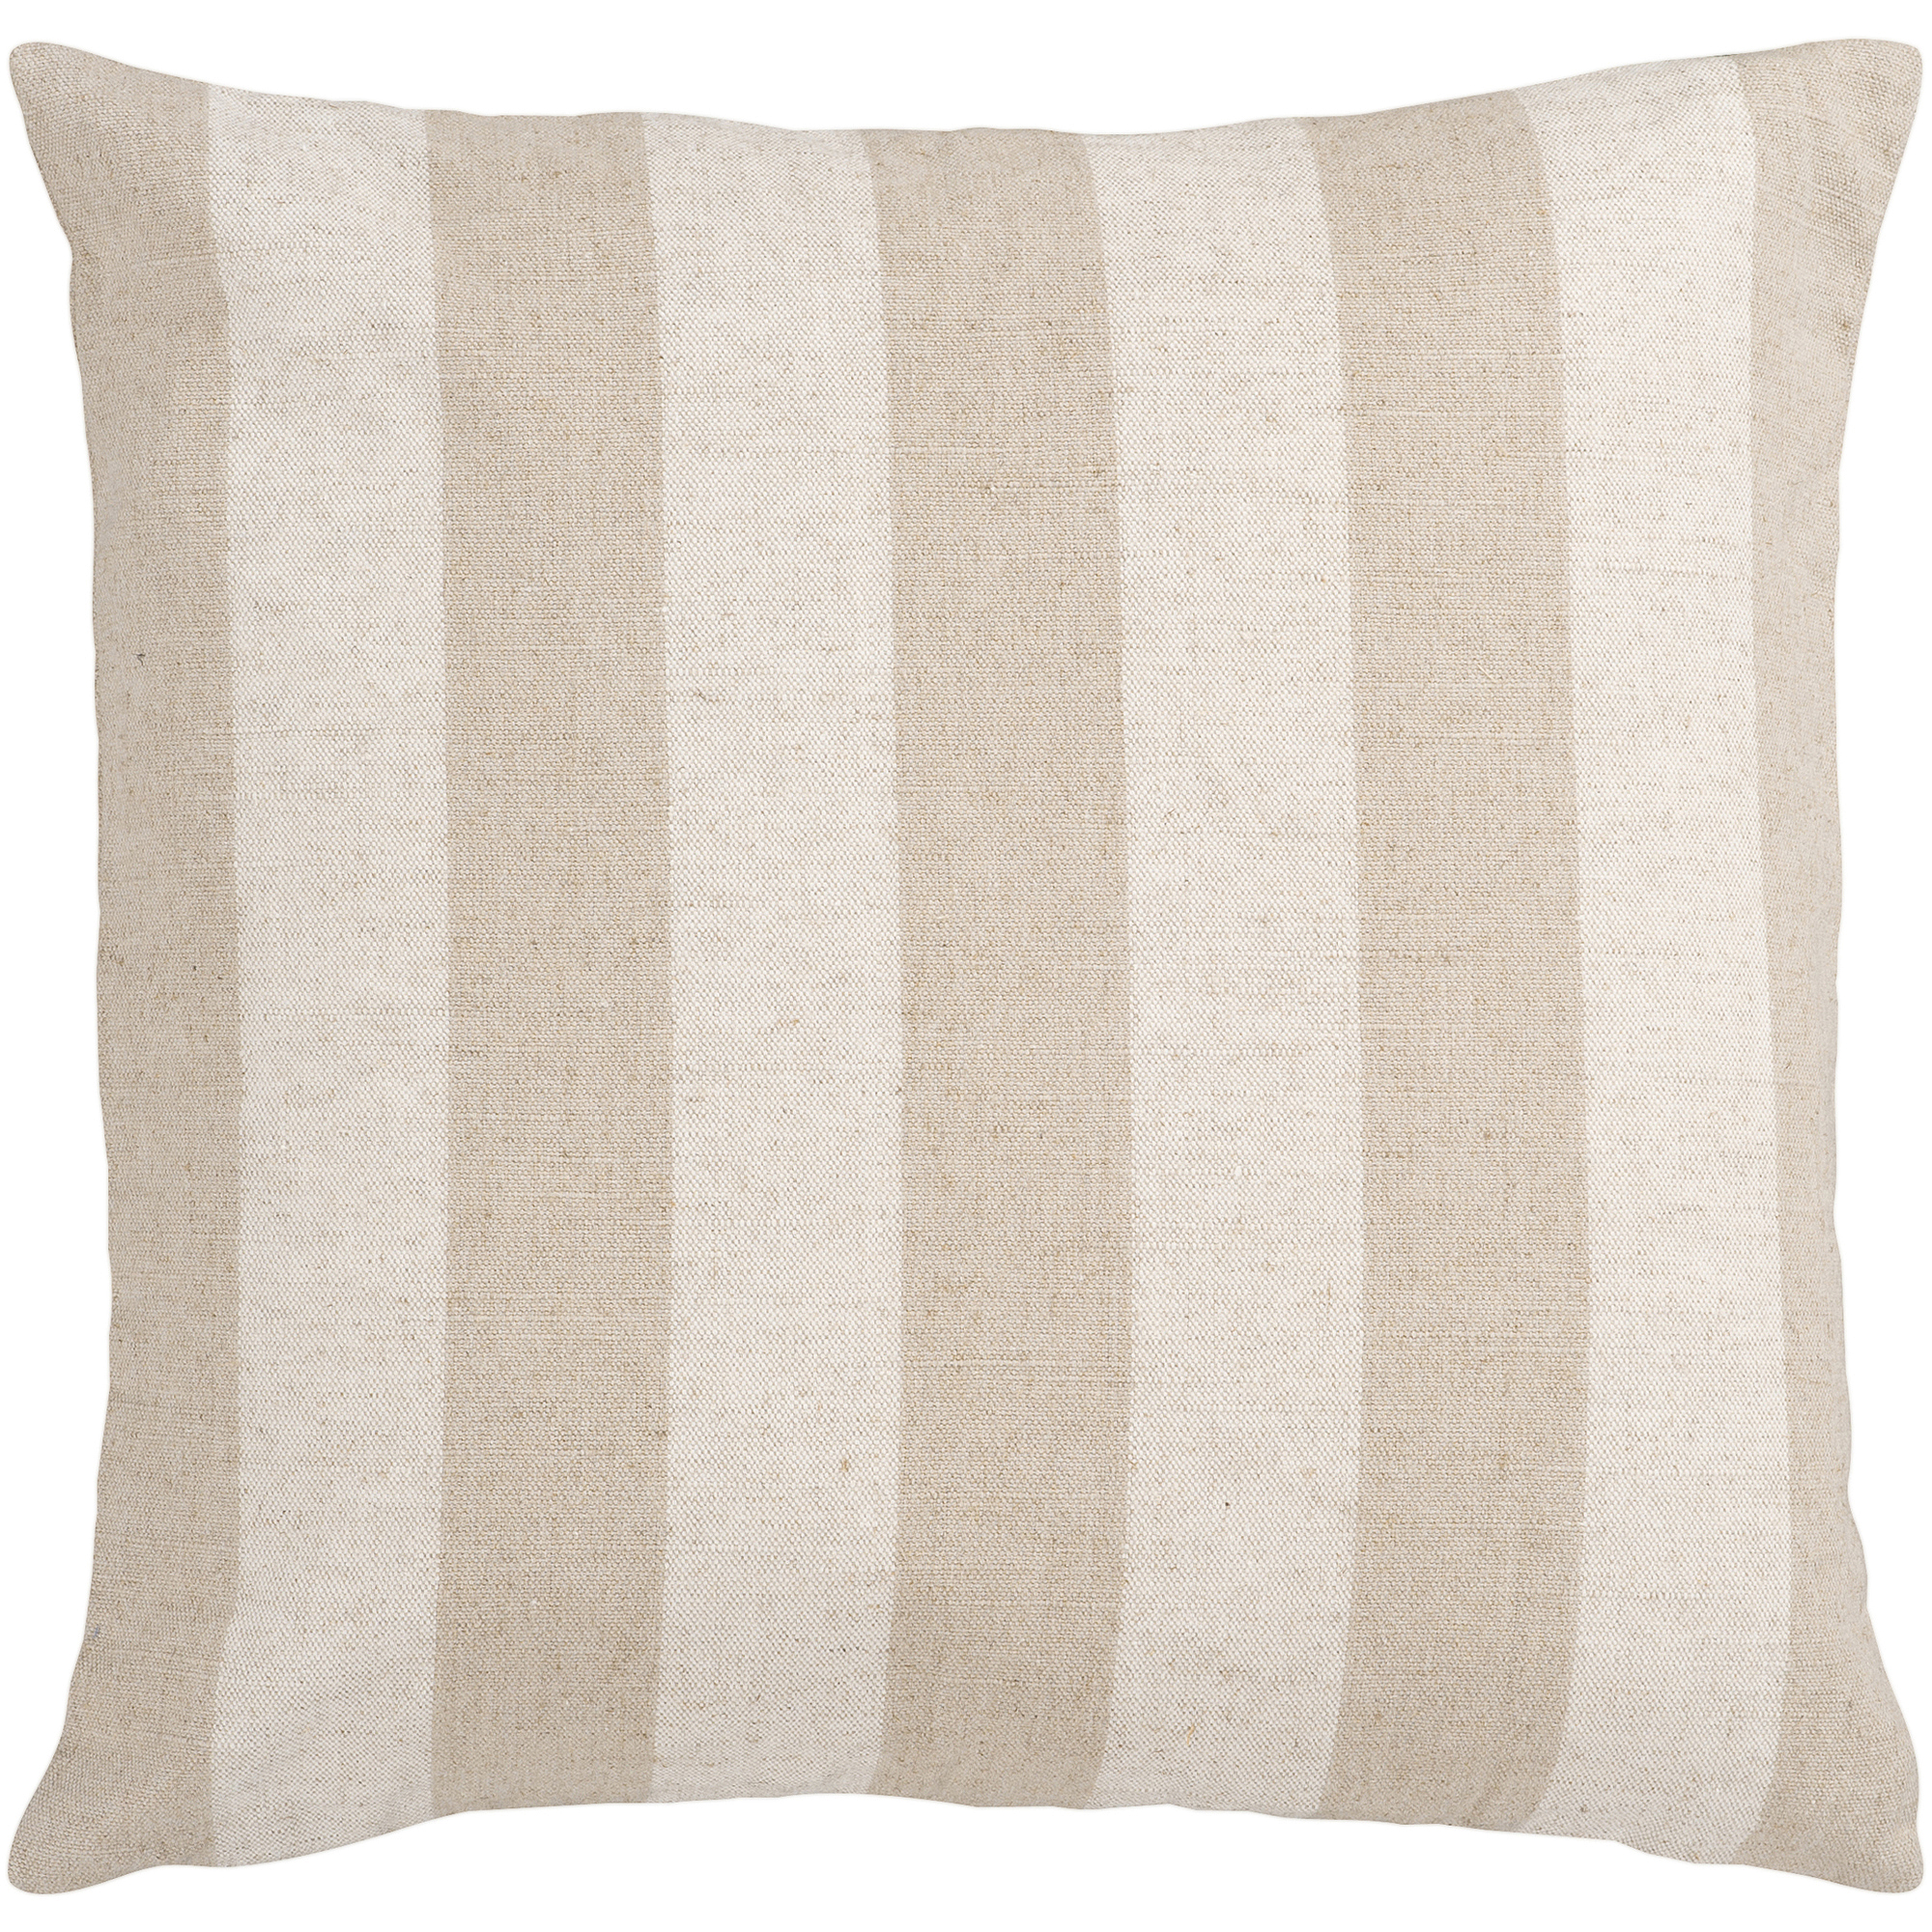 Art of Knot Catlin Hand Crafted Straight-On Stripe Linen and Cotton Decorative Pillow with Poly Filler, Beige